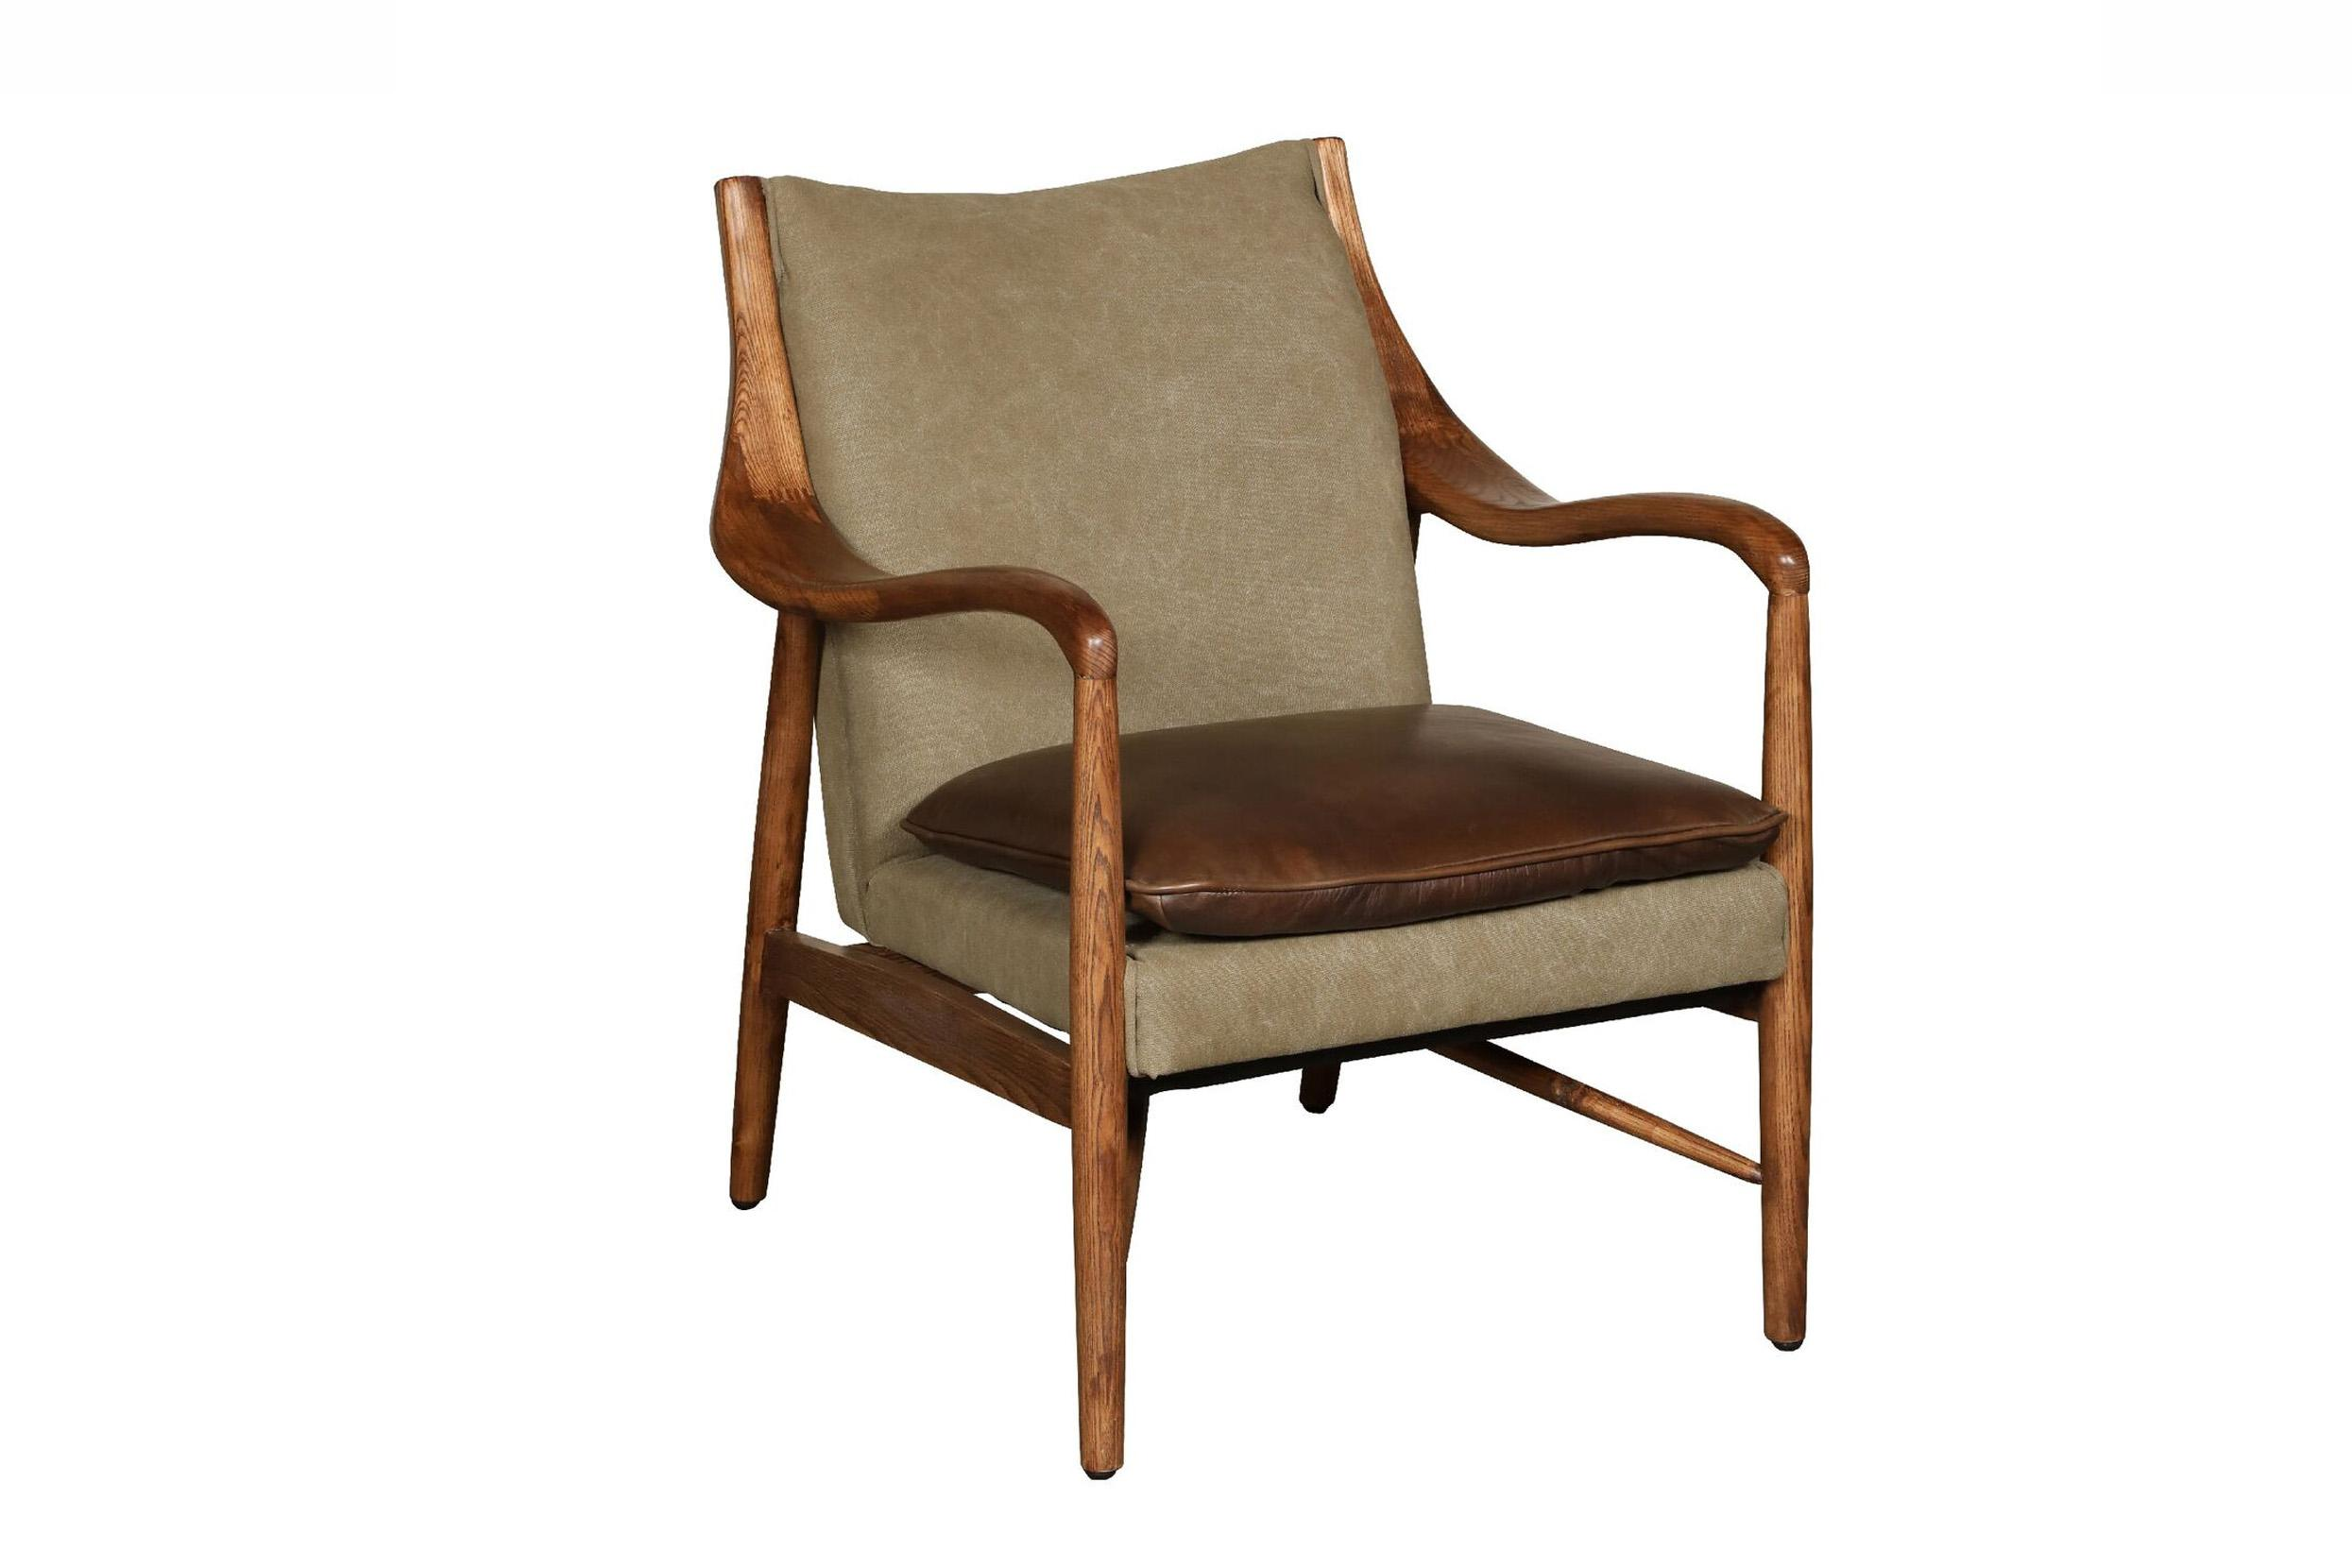 Sailsbury Chair